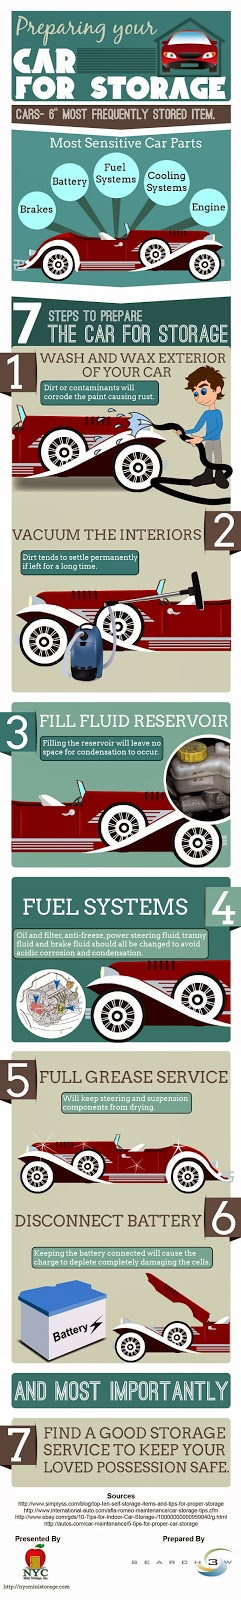 This infographic titled u0027Preparing Your Car For Storageu0027 helps potential storage unit renters with  sc 1 st  Pinterest & This infographic titled u0027Preparing Your Car For Storageu0027 helps ...